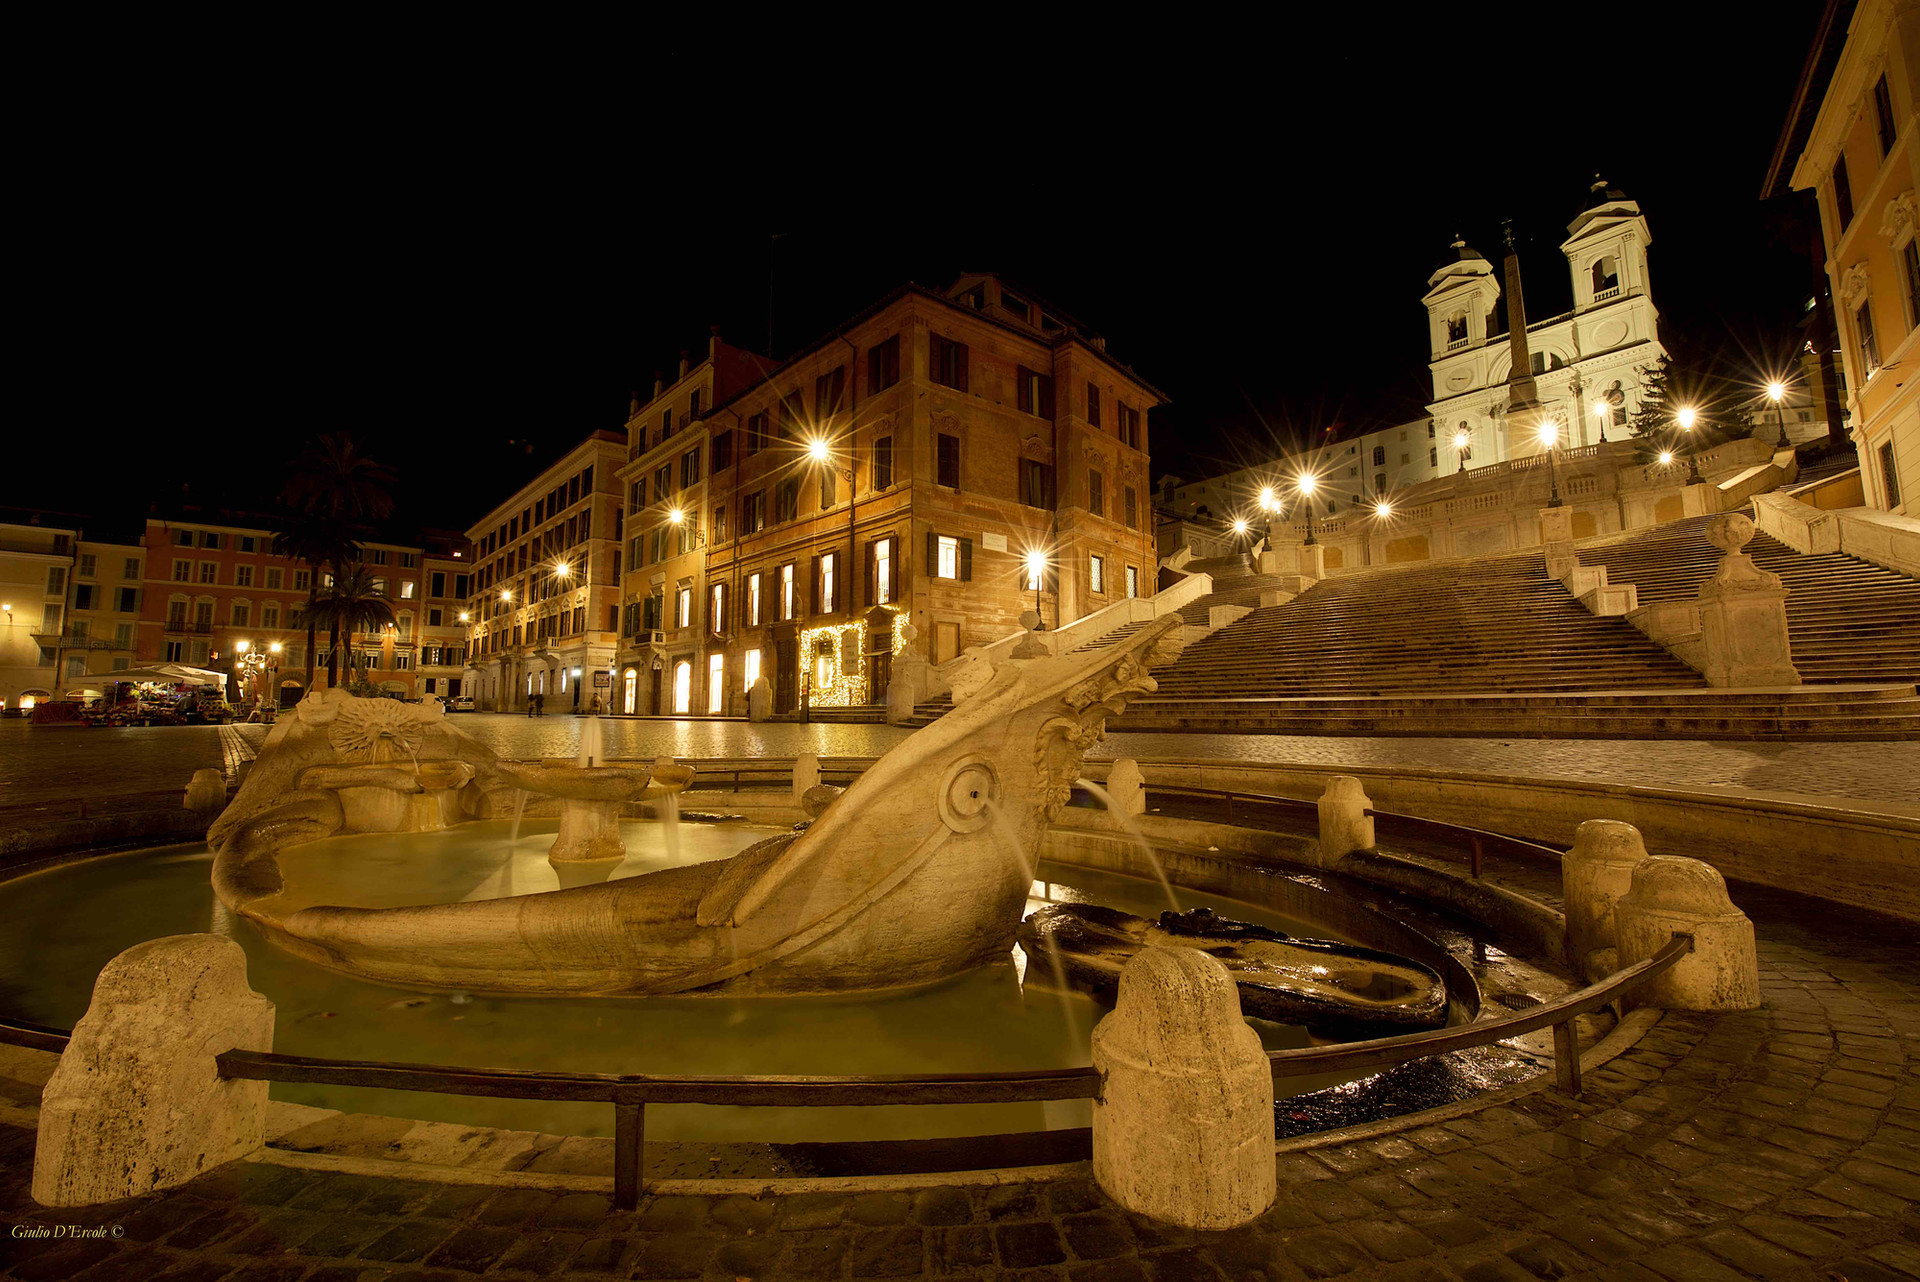 Piazza di Spagna and the Spanish steps.